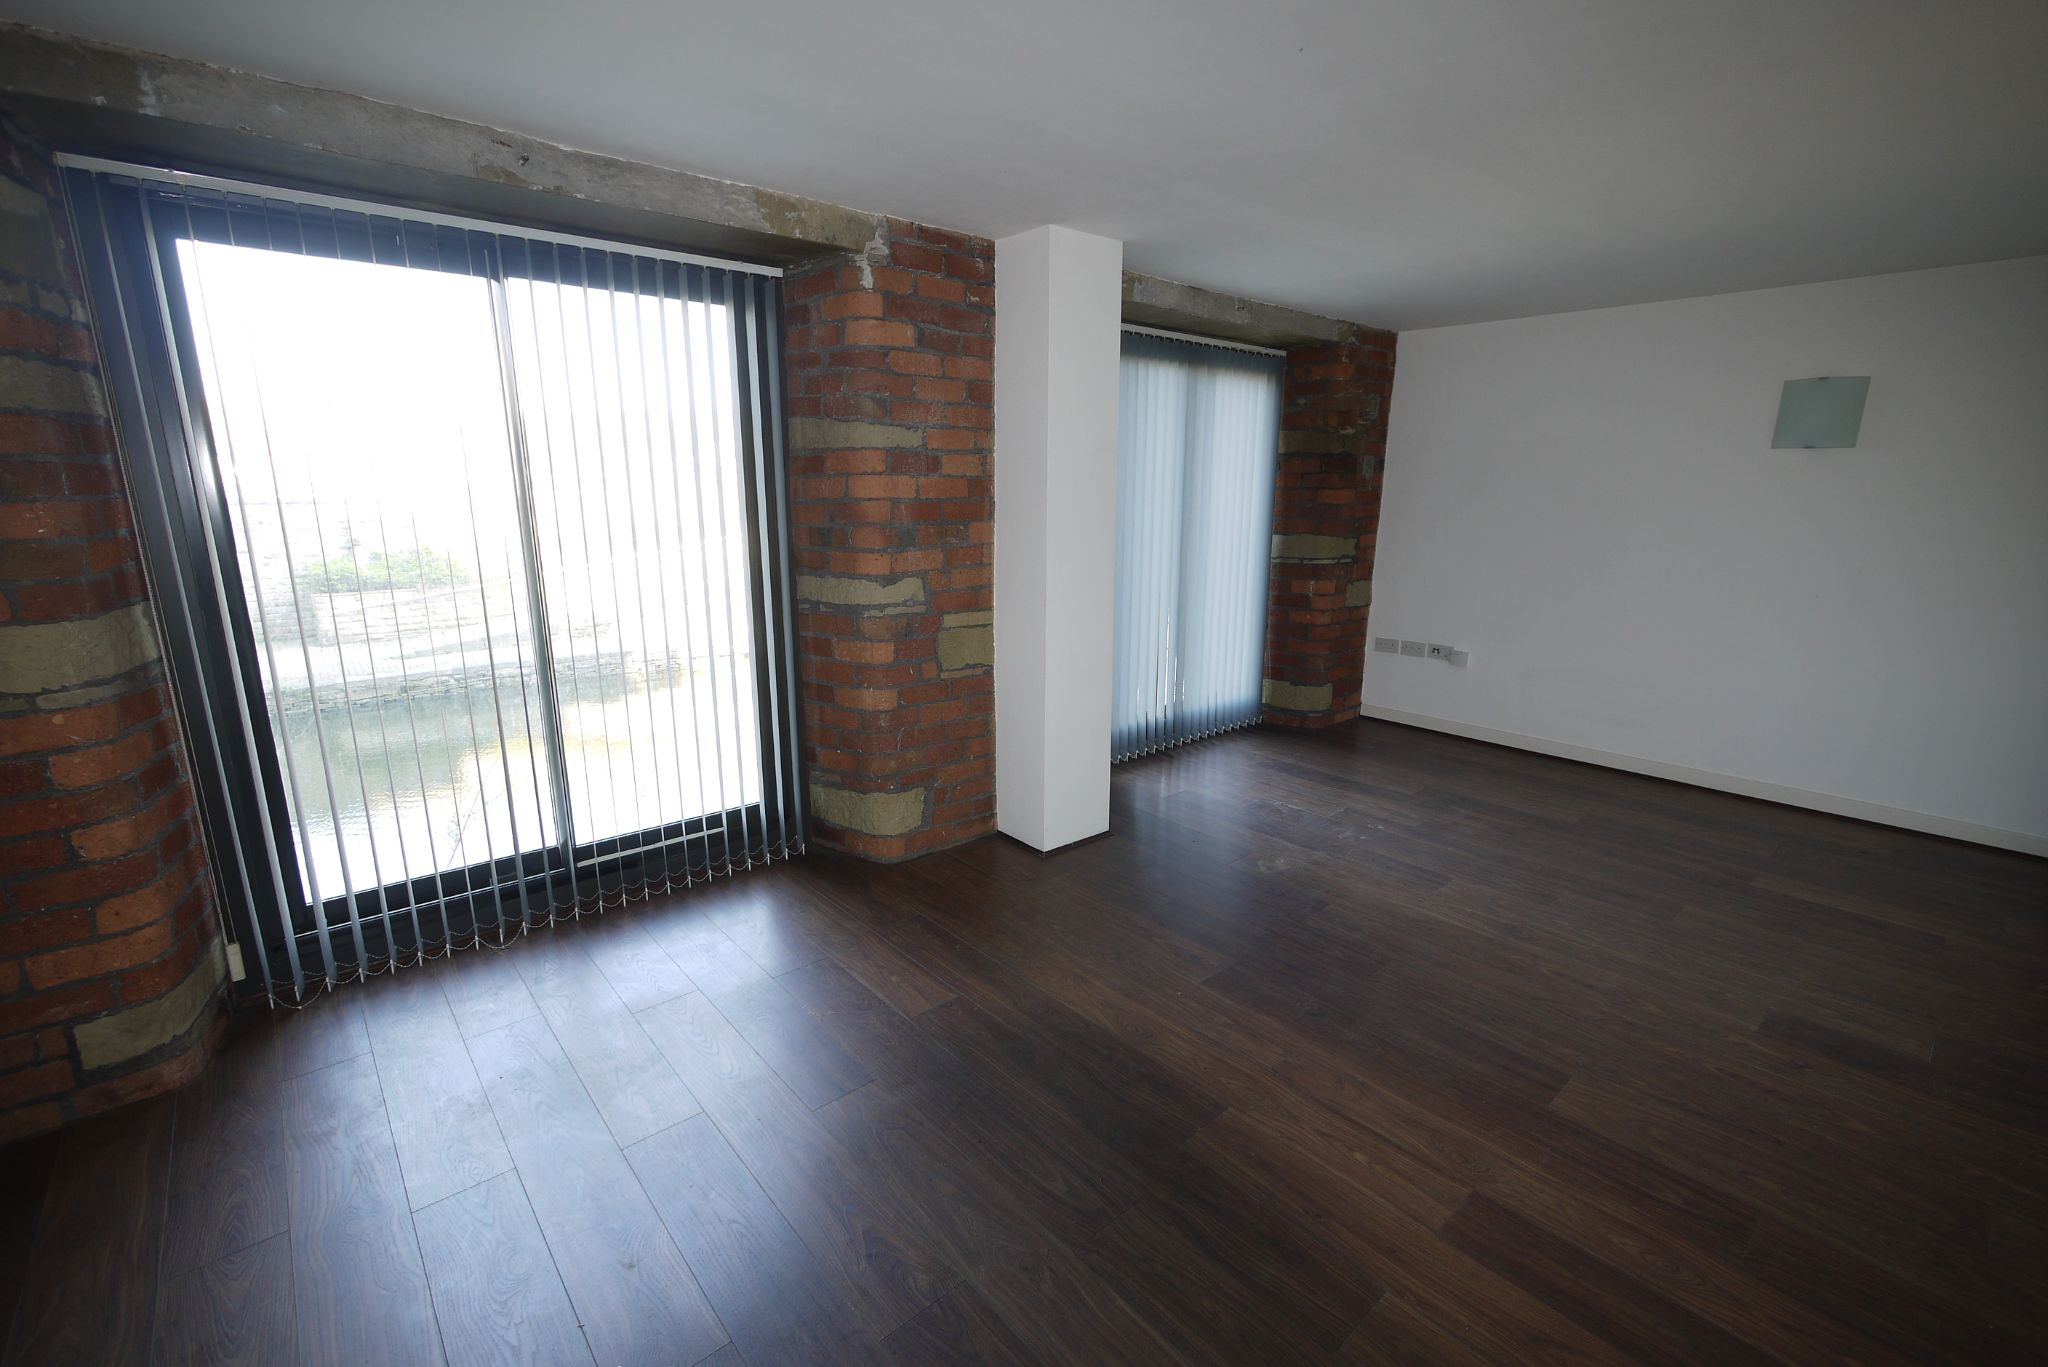 1 bedroom ground floor flat/apartment SSTC in Brighouse - Photograph 4.